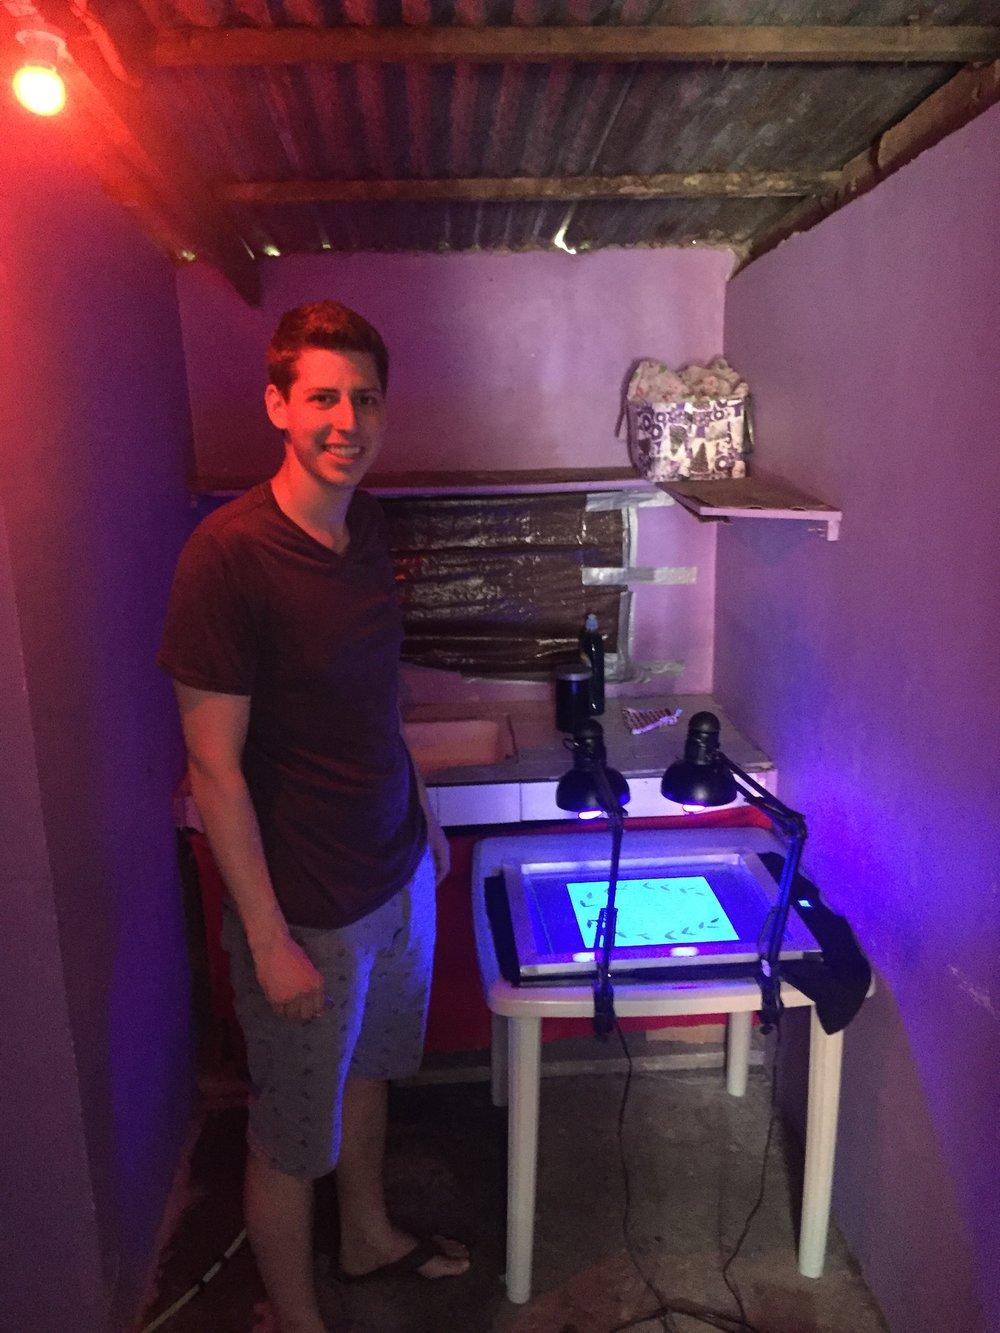 Andrew in the makeshift darkroom he researched and set up for ABR